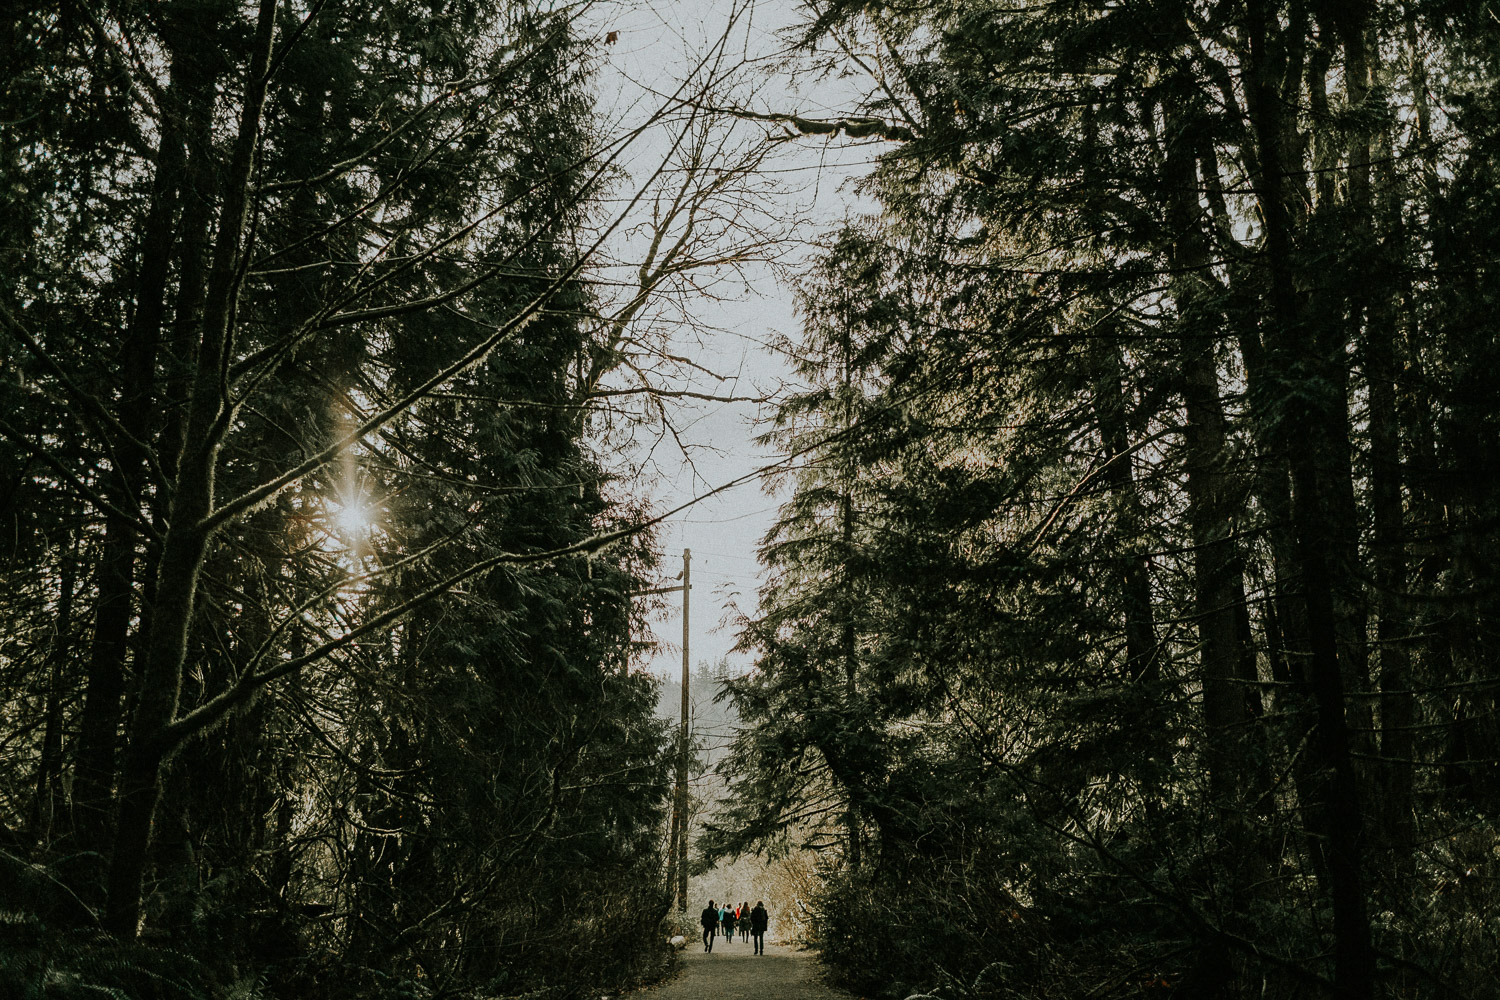 Image of people waking inside pine trees